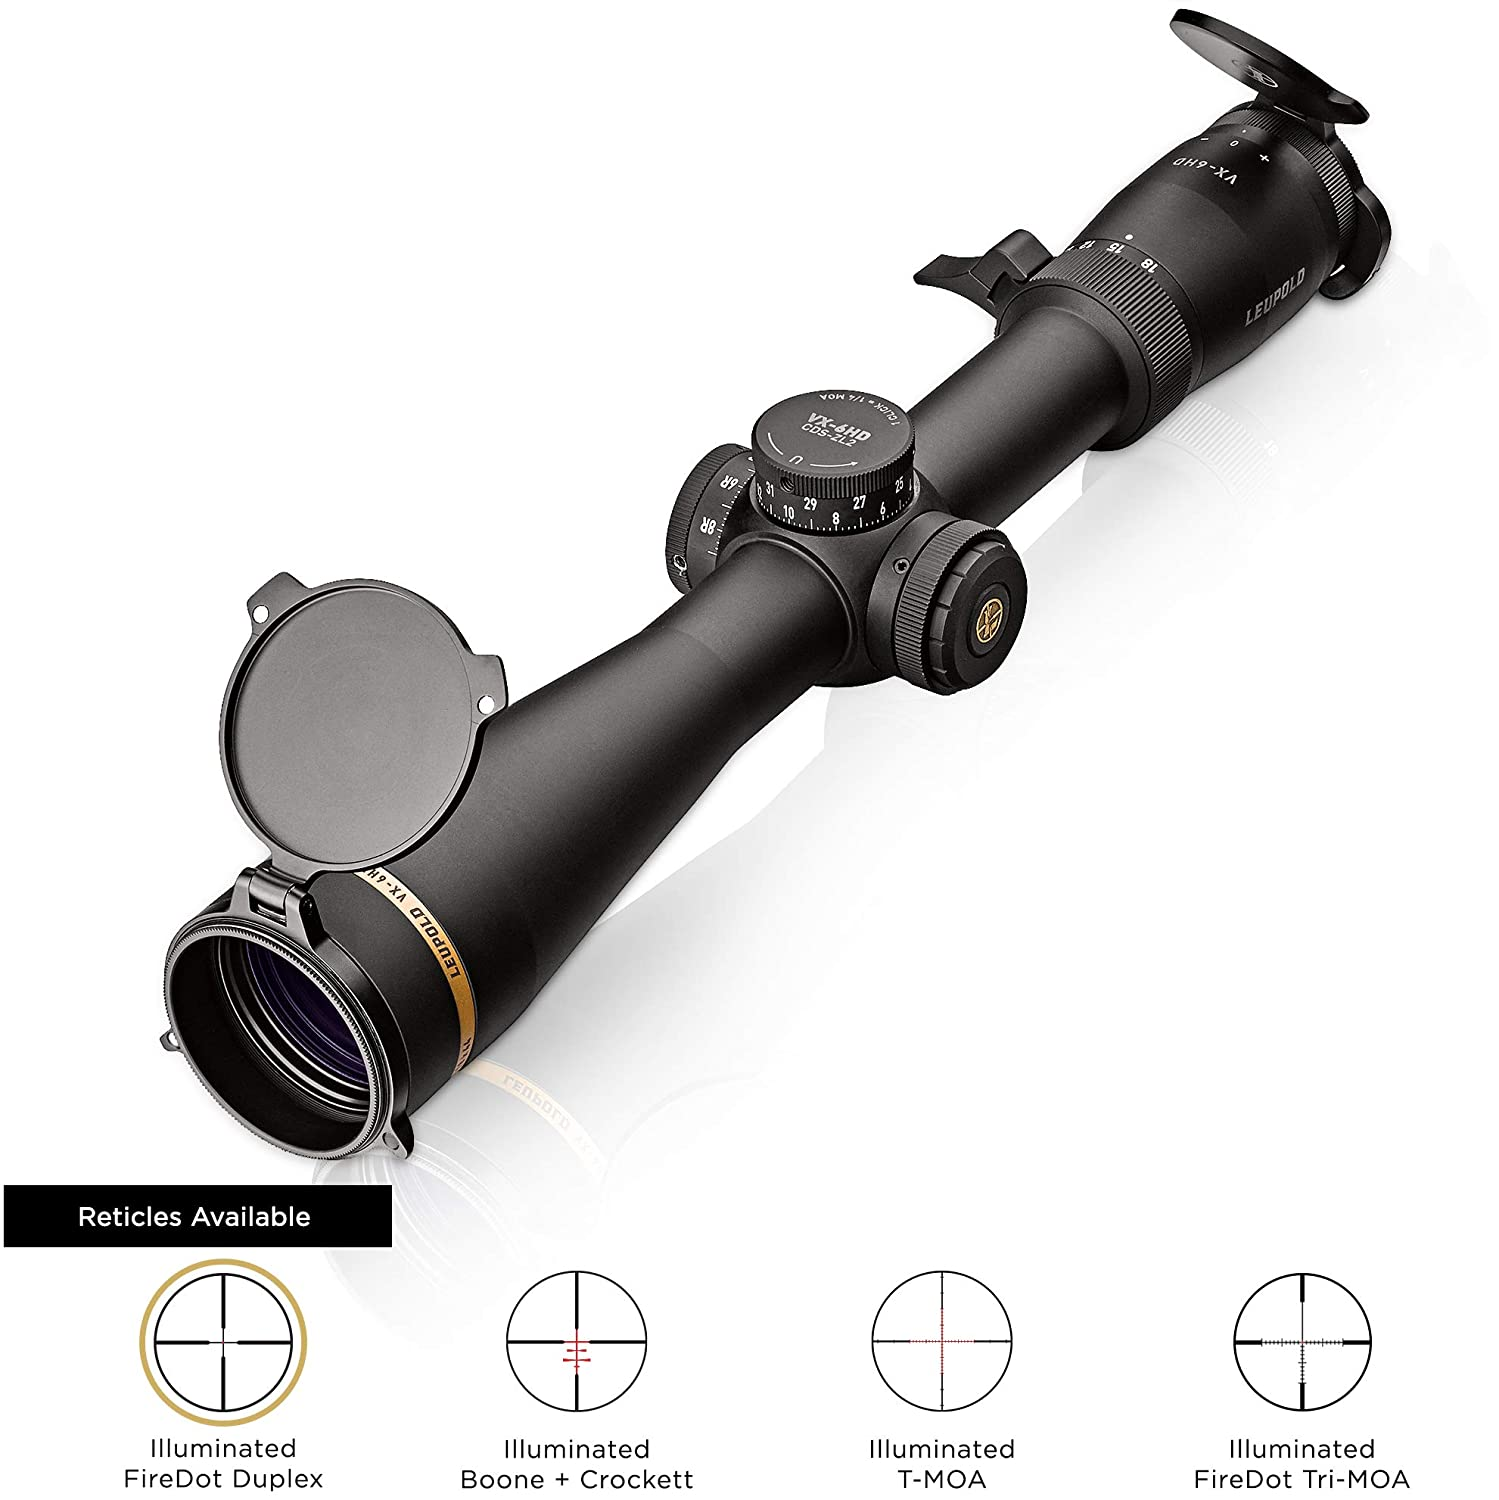 TRUGLO TRU-BRITE 30 Series Illuminated Tactical Rifle Scope – Includes Scope Mount